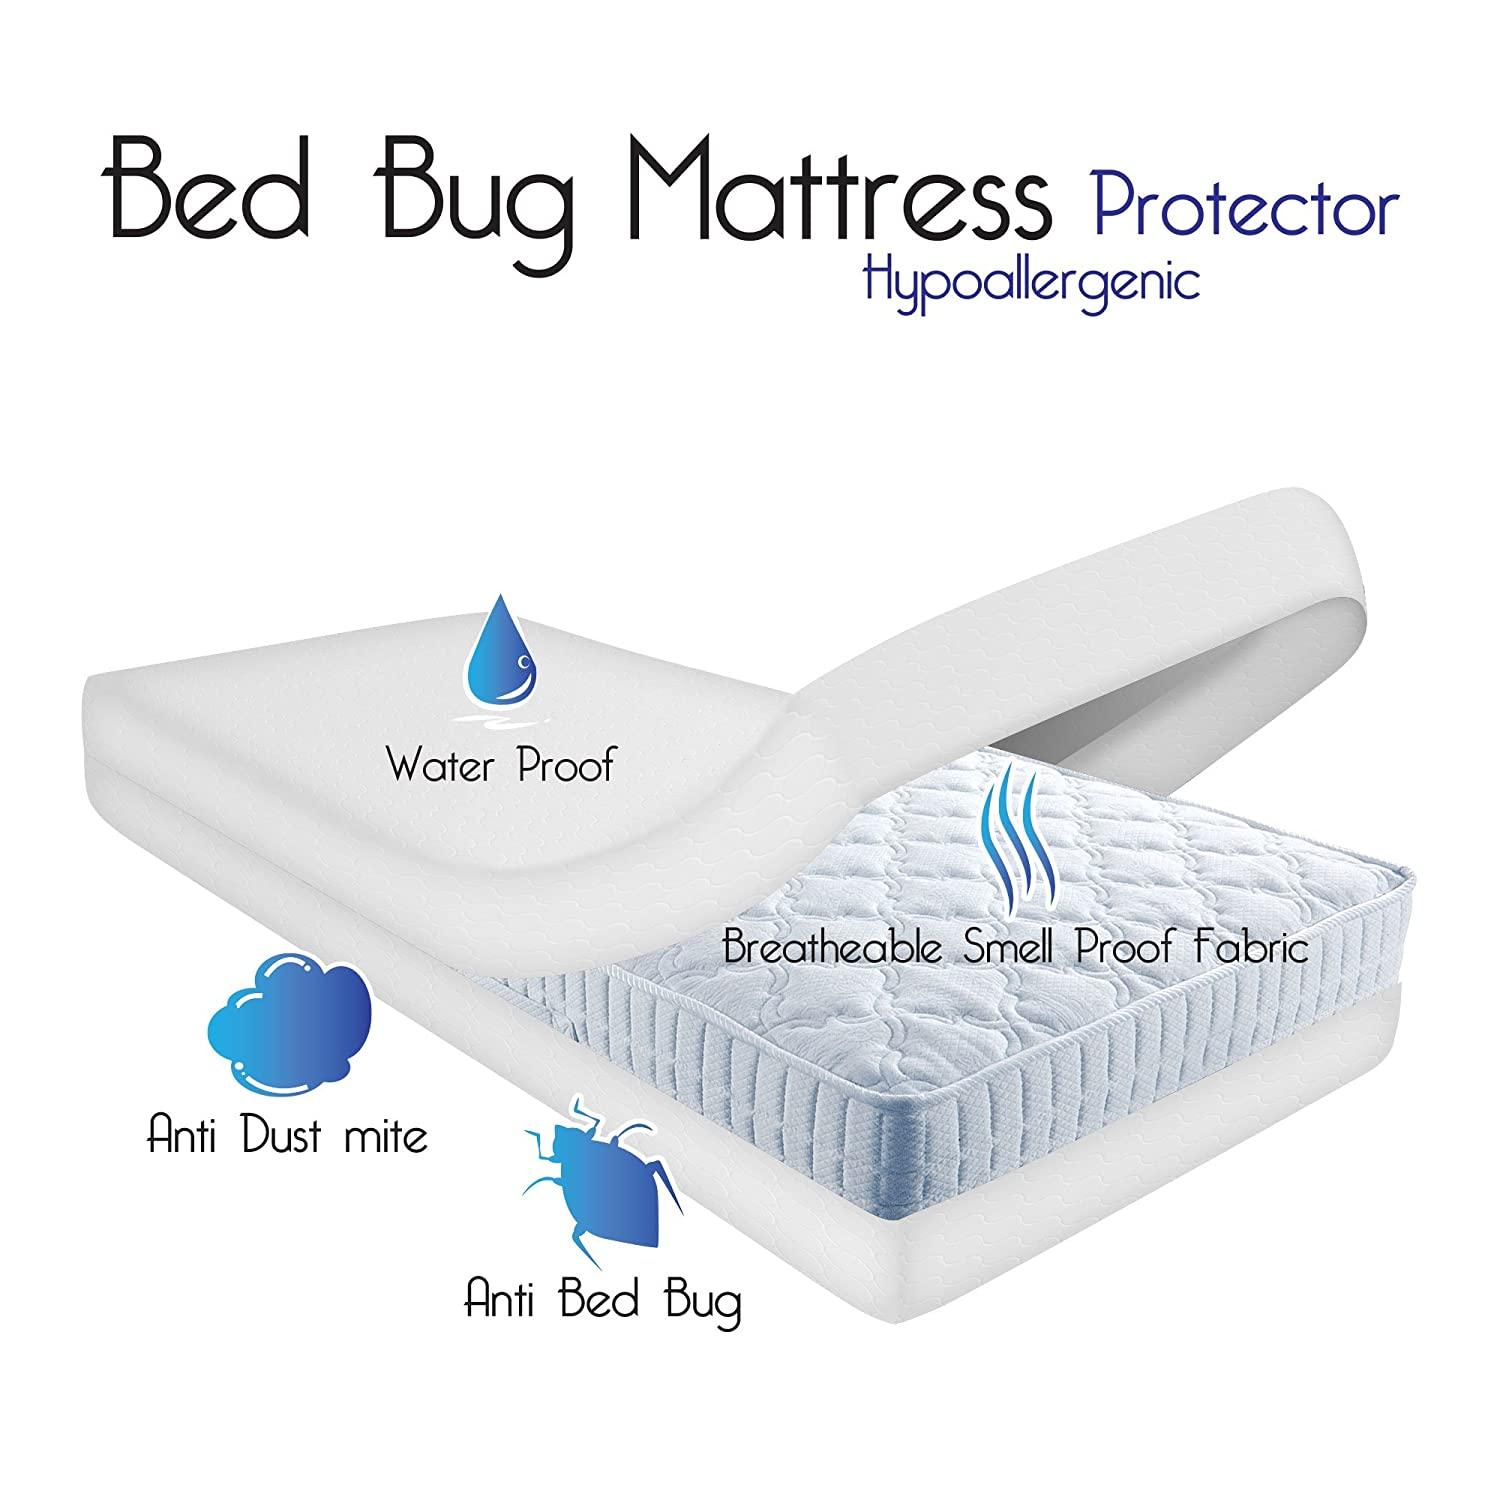 beyond the tags sheets bath what covers awesome protector duvet of amp mattress bed lovely are and best